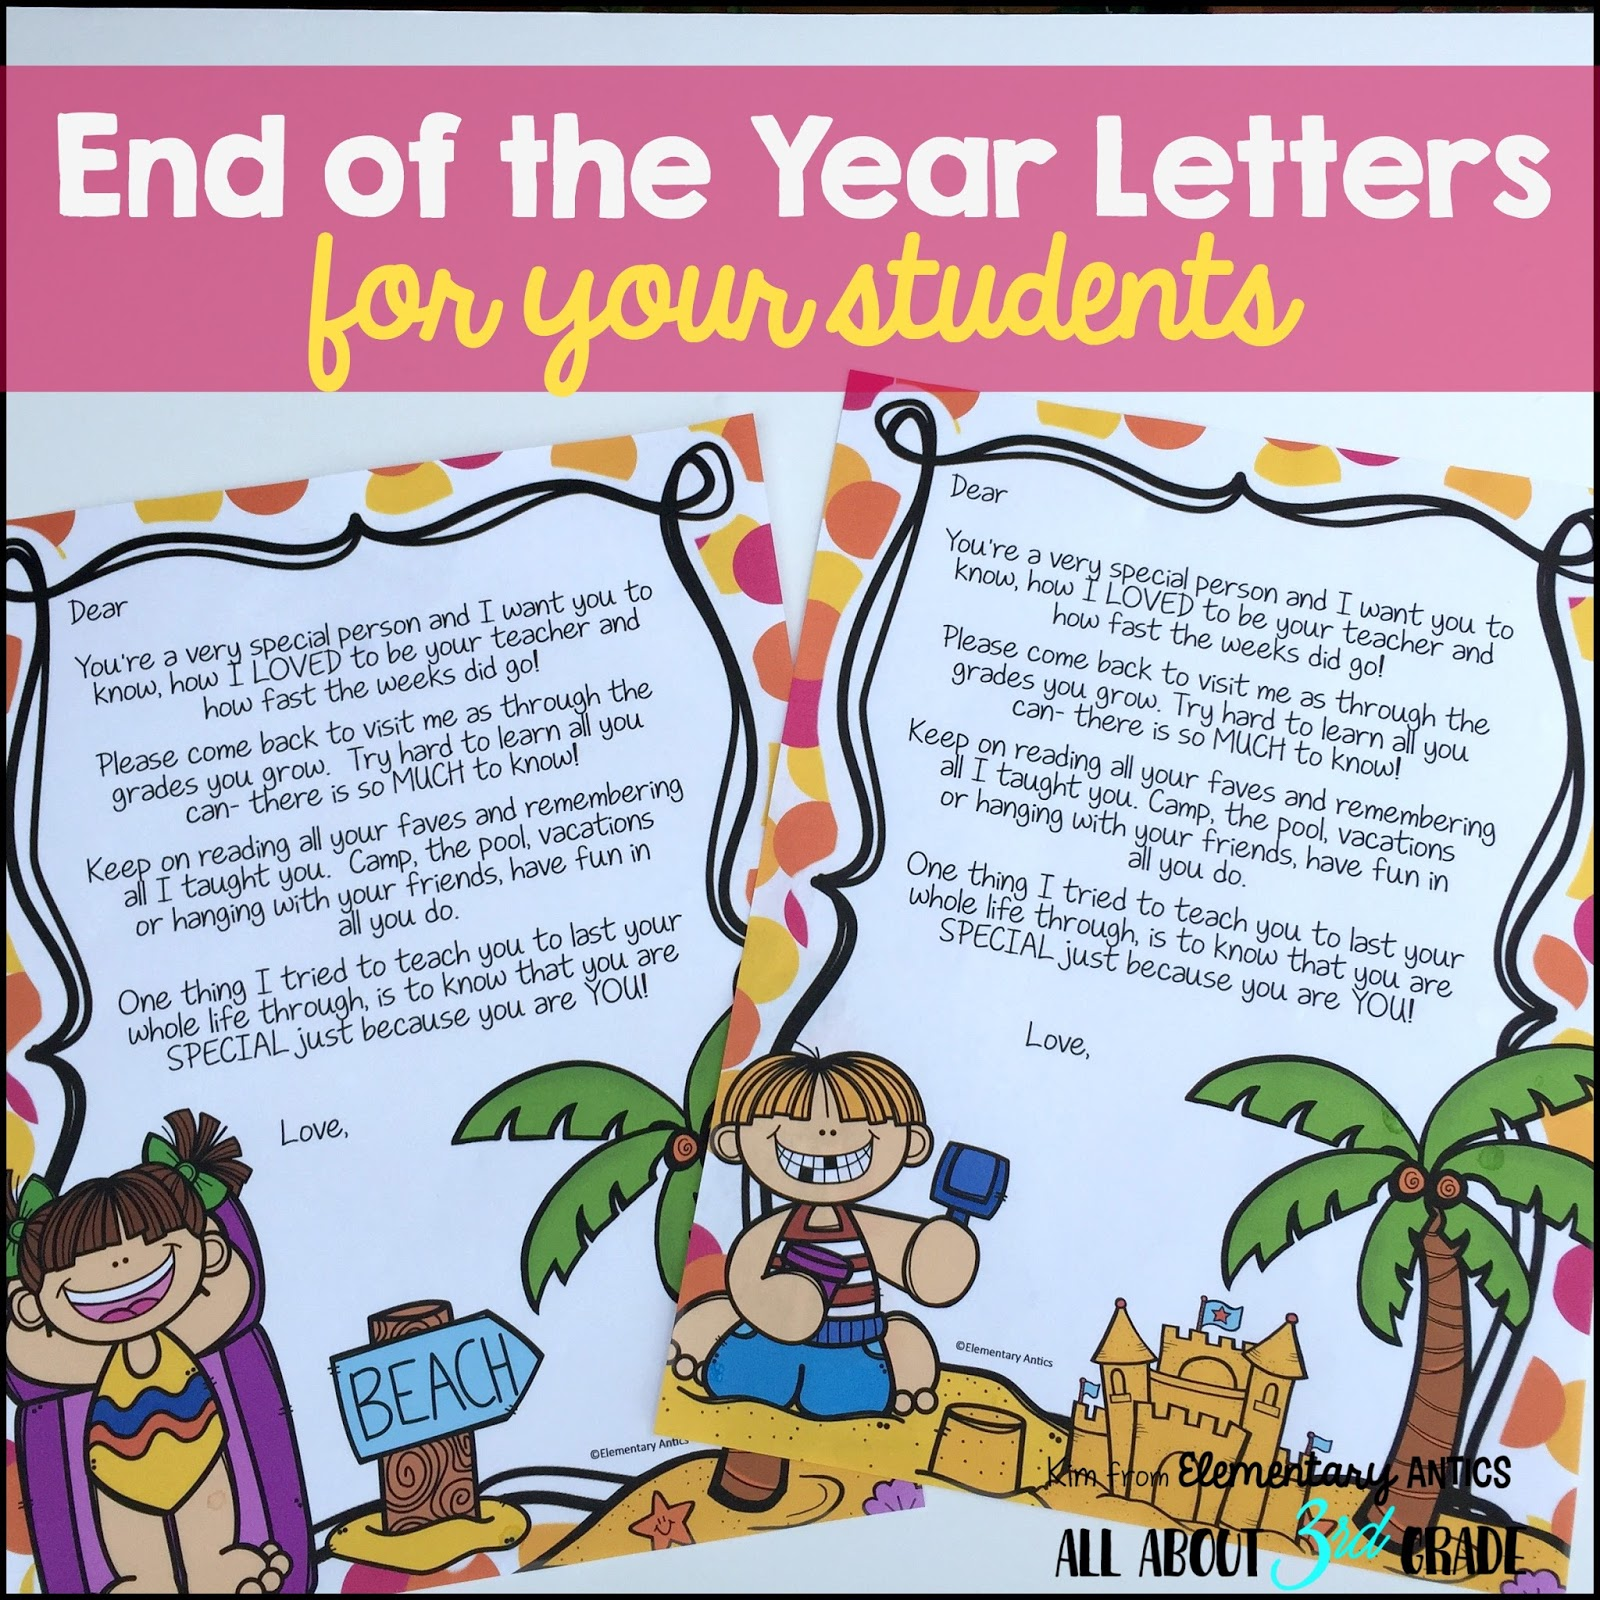 This is a great end of the year surprise for you students! The kids love getting real mail in their mailbox from their teacher!